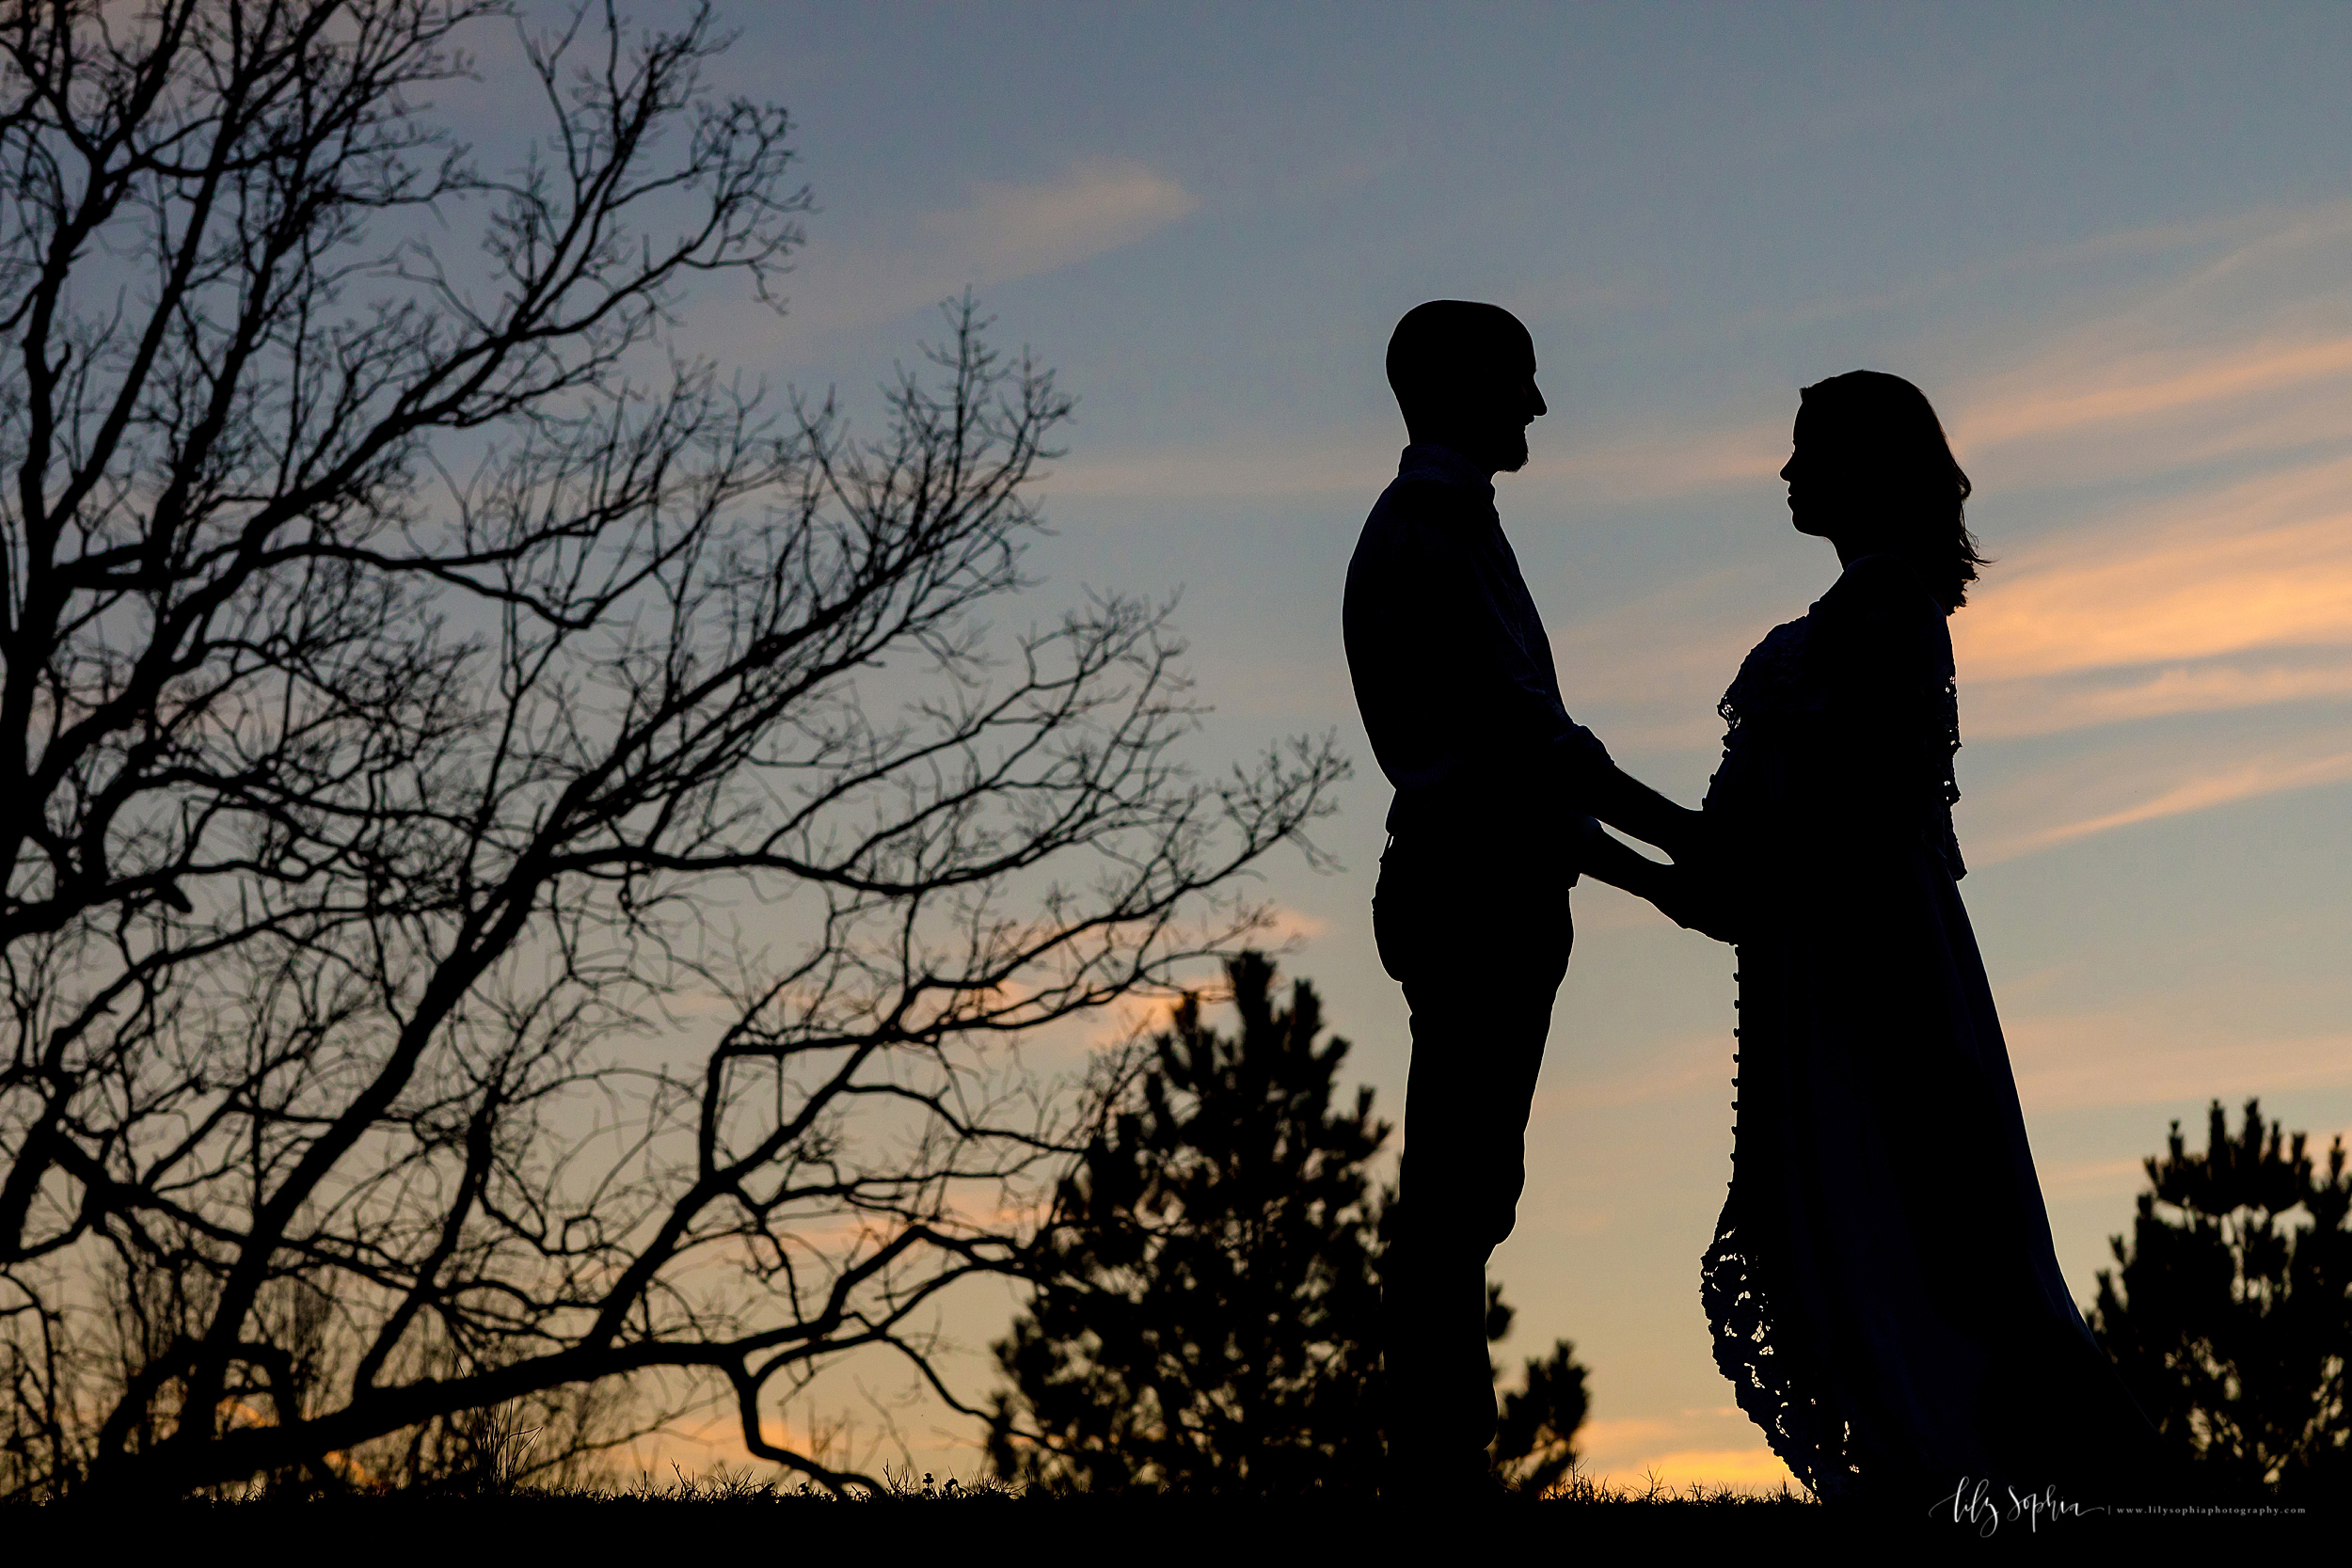 atlanta-sandy-springs-buckhead-virginia-highlands-smyrna-decatur-lily-sophia-photography-expecting-baby-girl-couples-maternity-session-sunset-park_0916.jpg